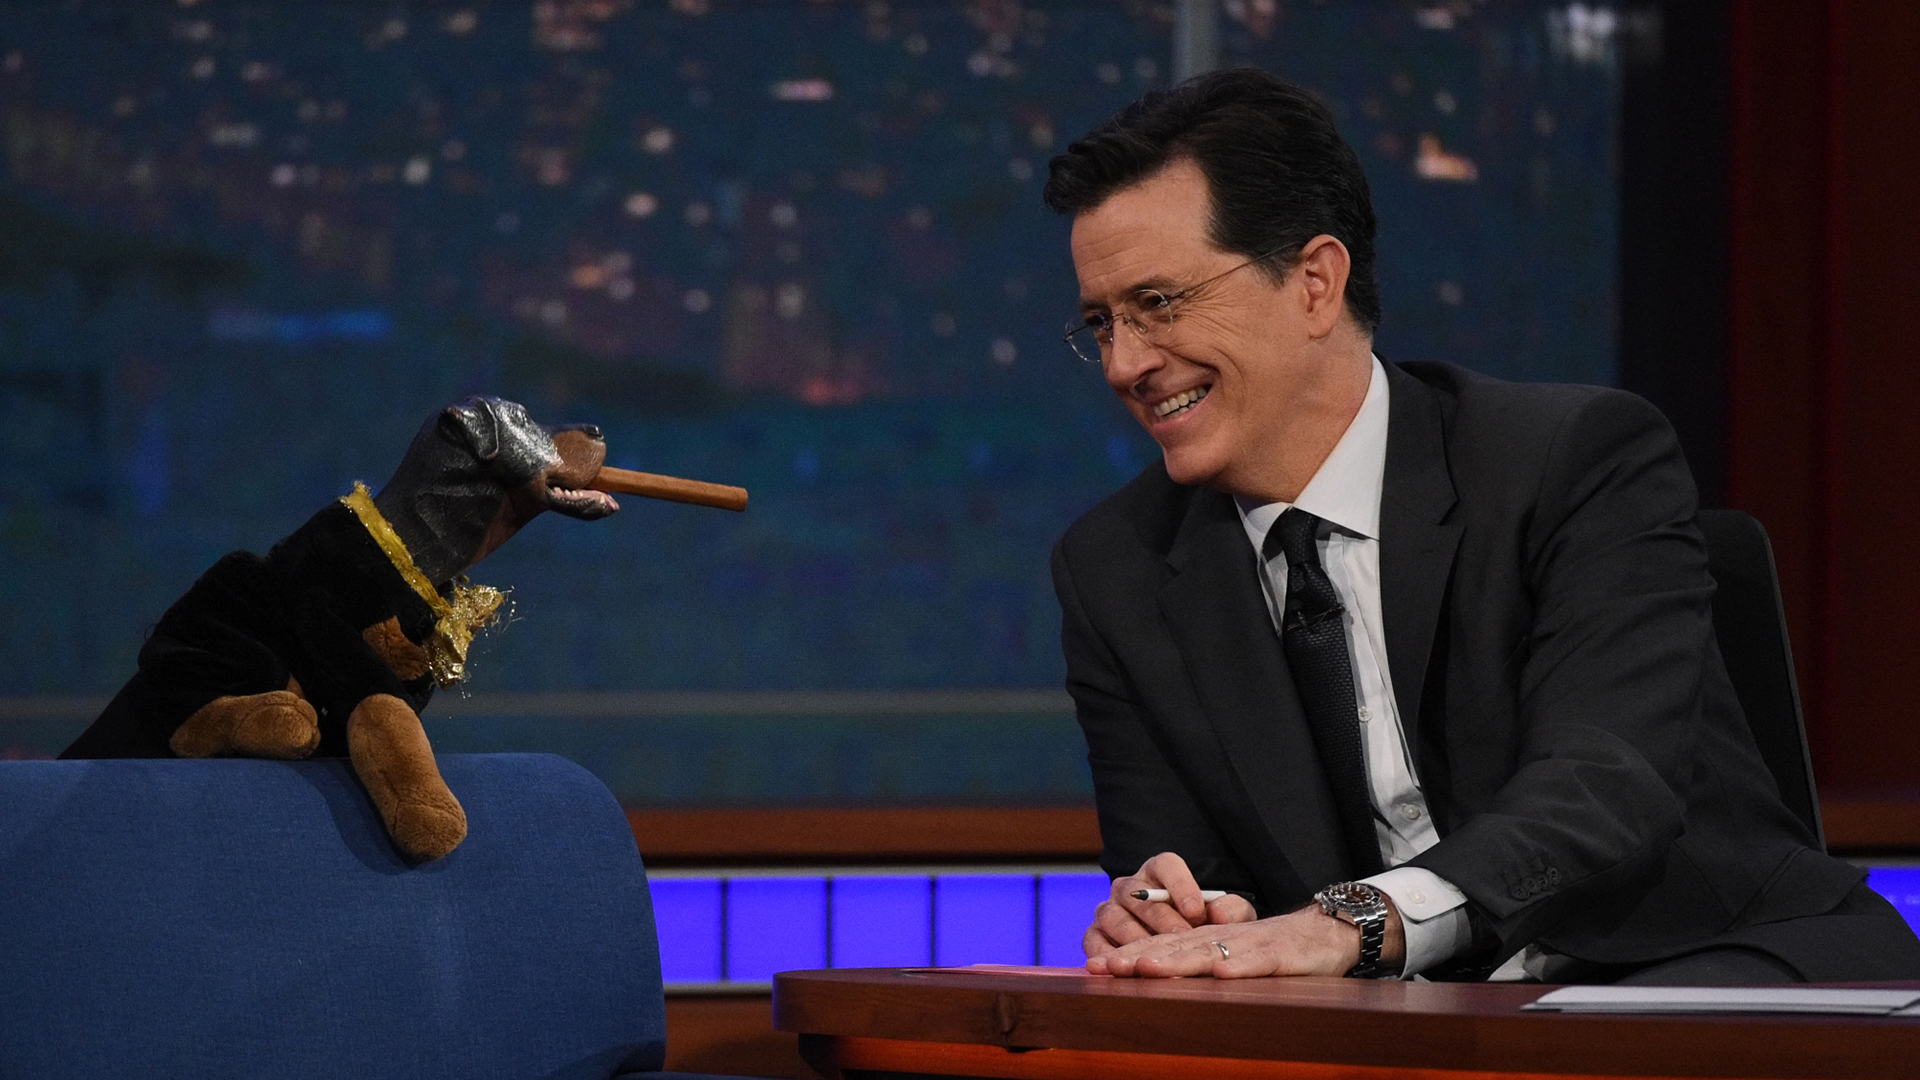 Triumph, the Insult Comic Dog and Stephen Colbert